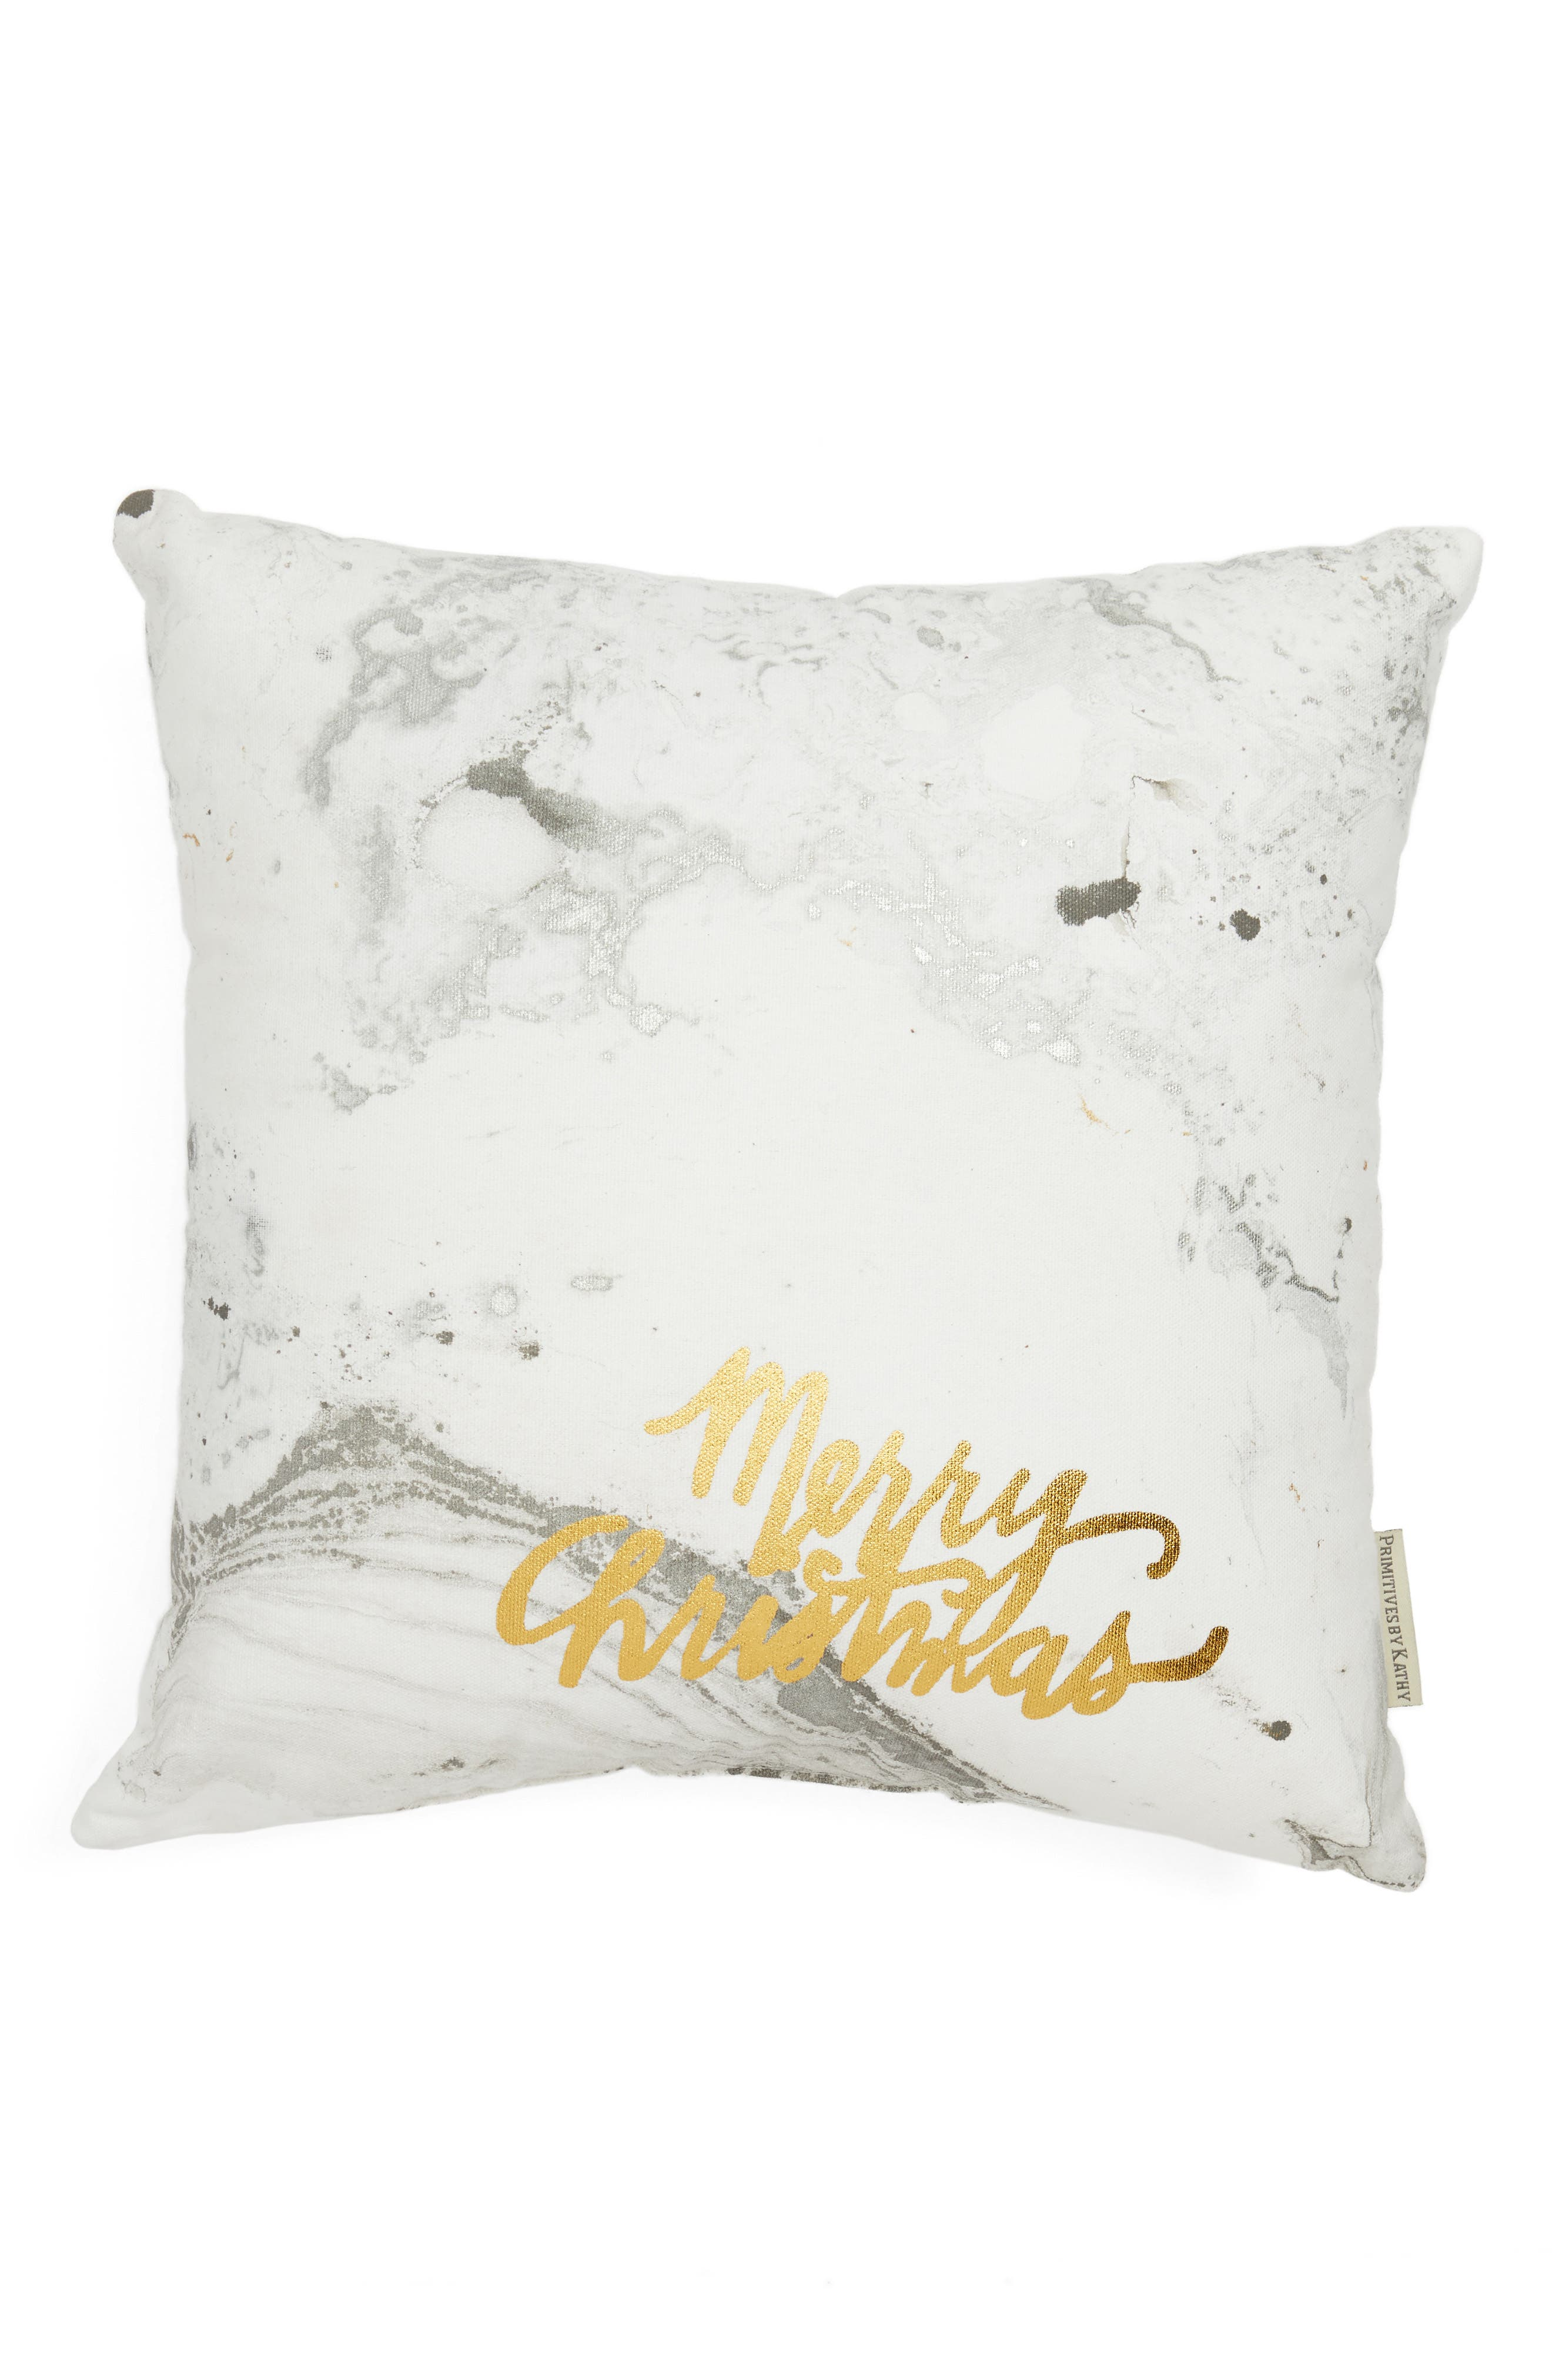 Merry Christmas Accent Pillow,                             Main thumbnail 1, color,                             Grey